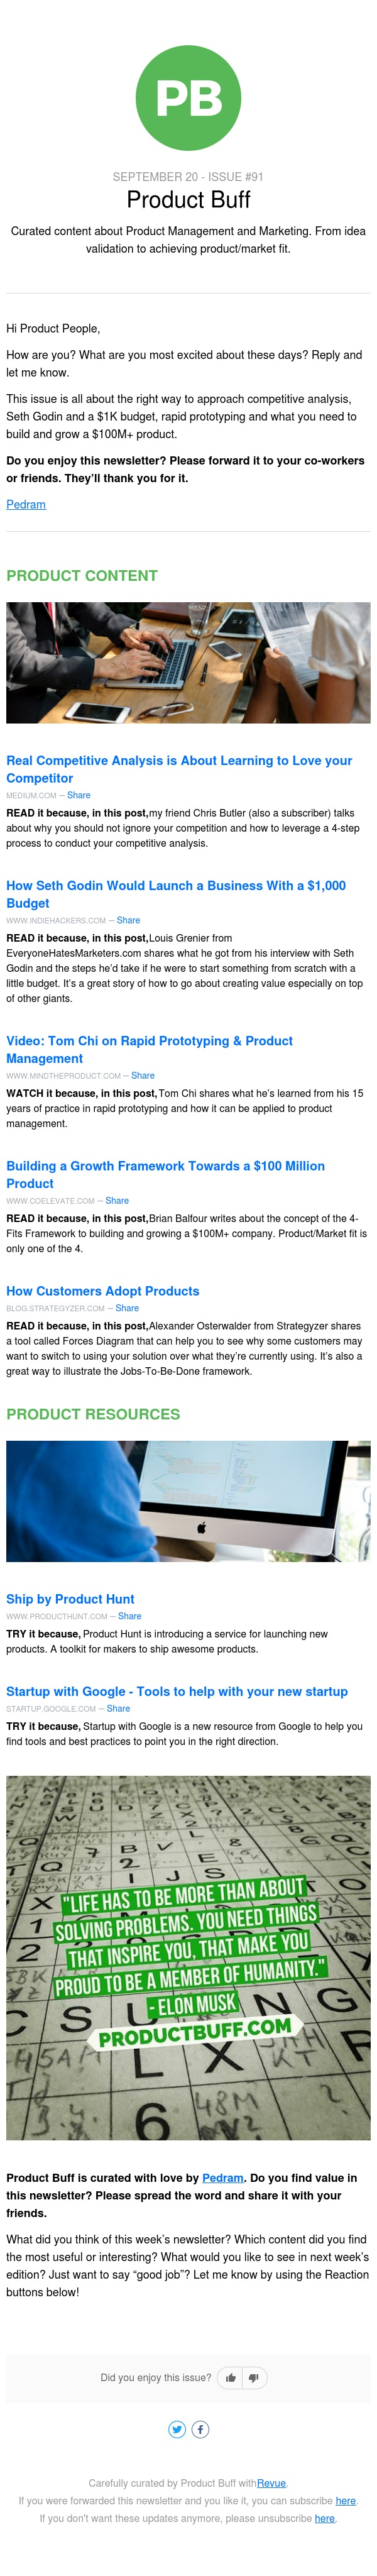 Competitive analysis done right, Rapid prototyping, A roadmap to a $100M+ product